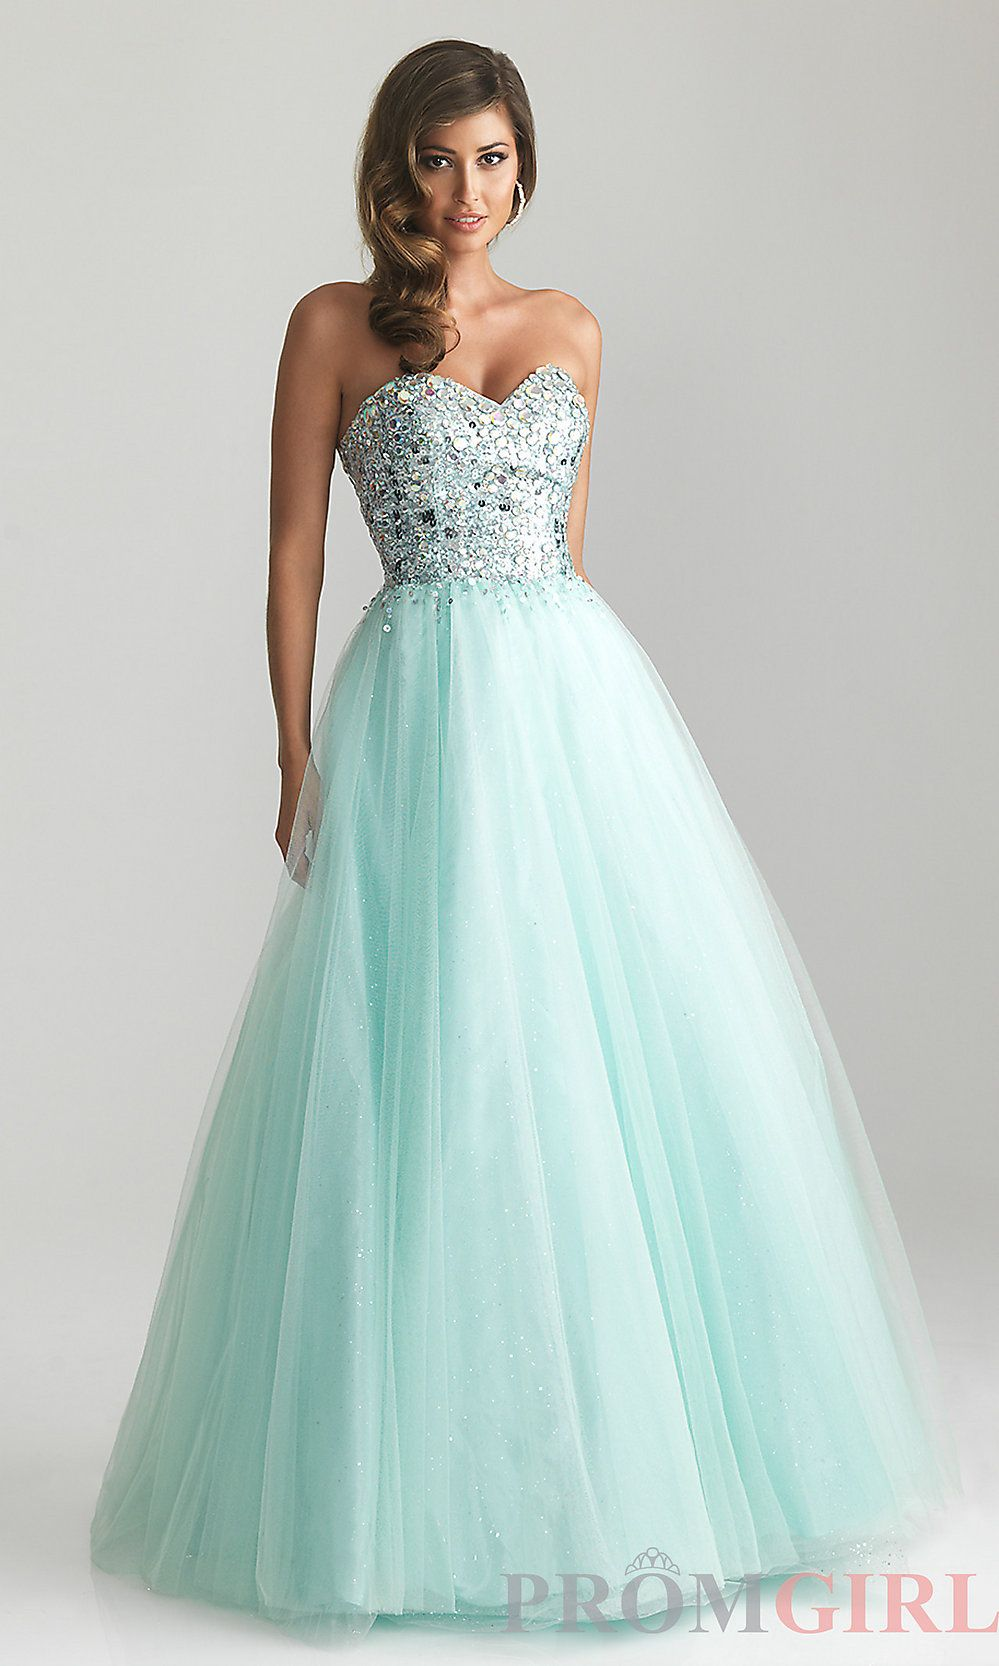 17 Best images about Pretty Dresses on Pinterest | Yellow gown ...